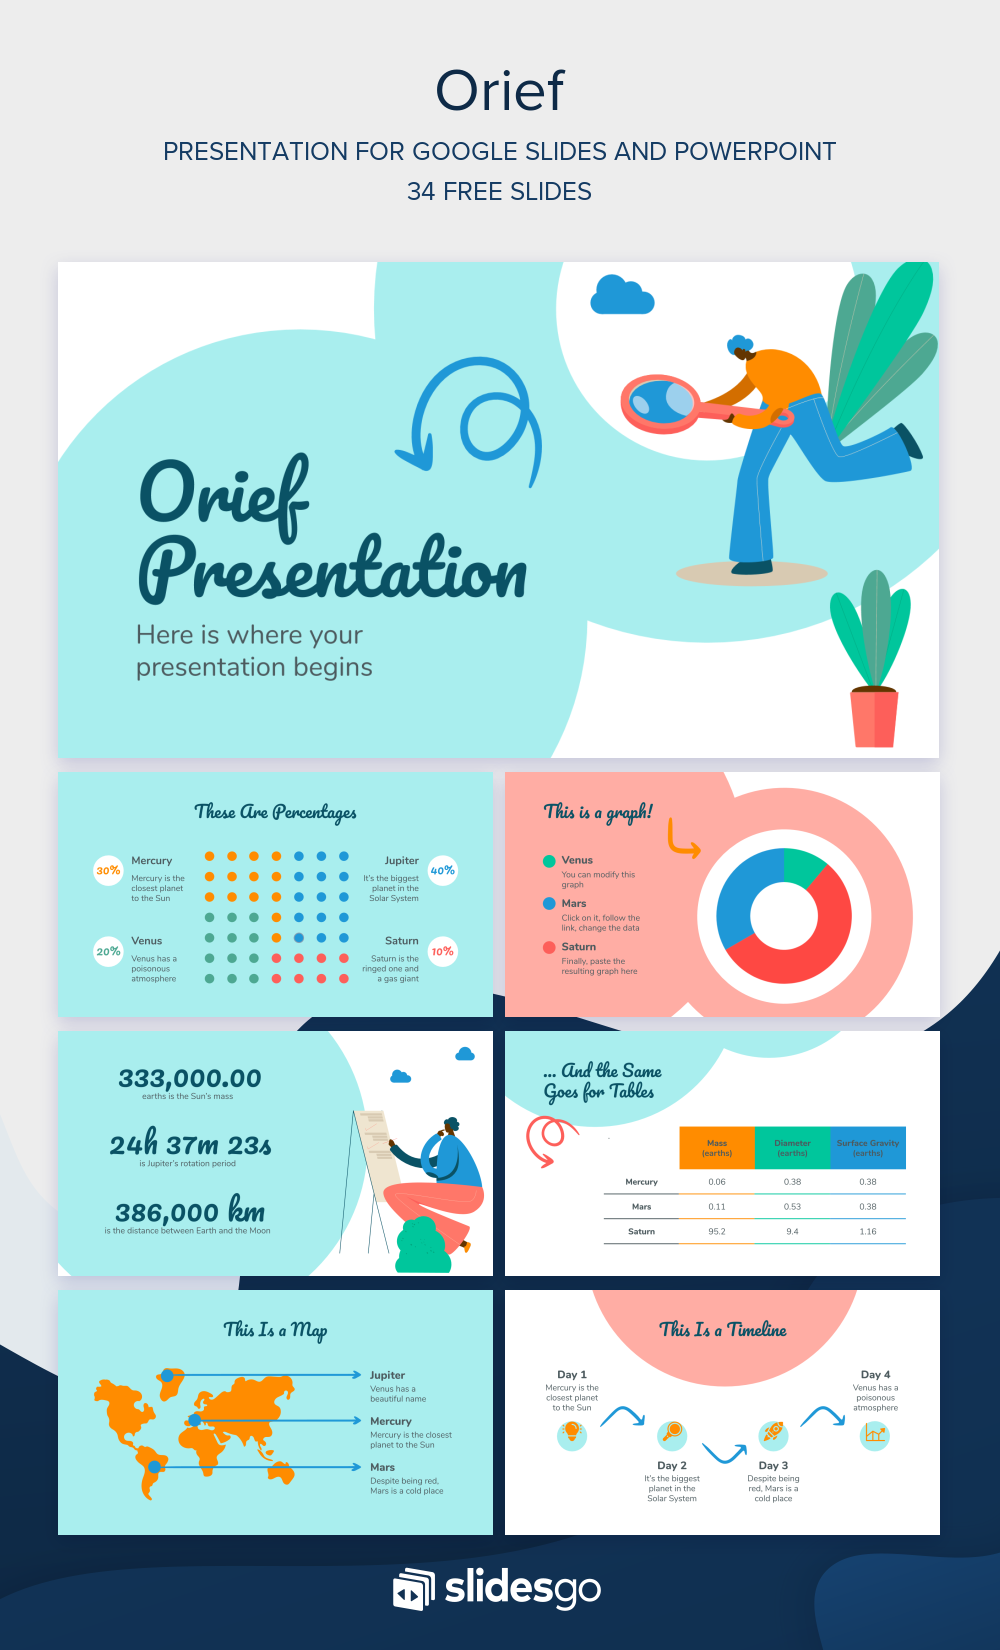 Design A Funny Presentation That Stands Out From The Rest By Downloading And Cust Poster Presentation Template Powerpoint Templates Powerpoint Design Templates